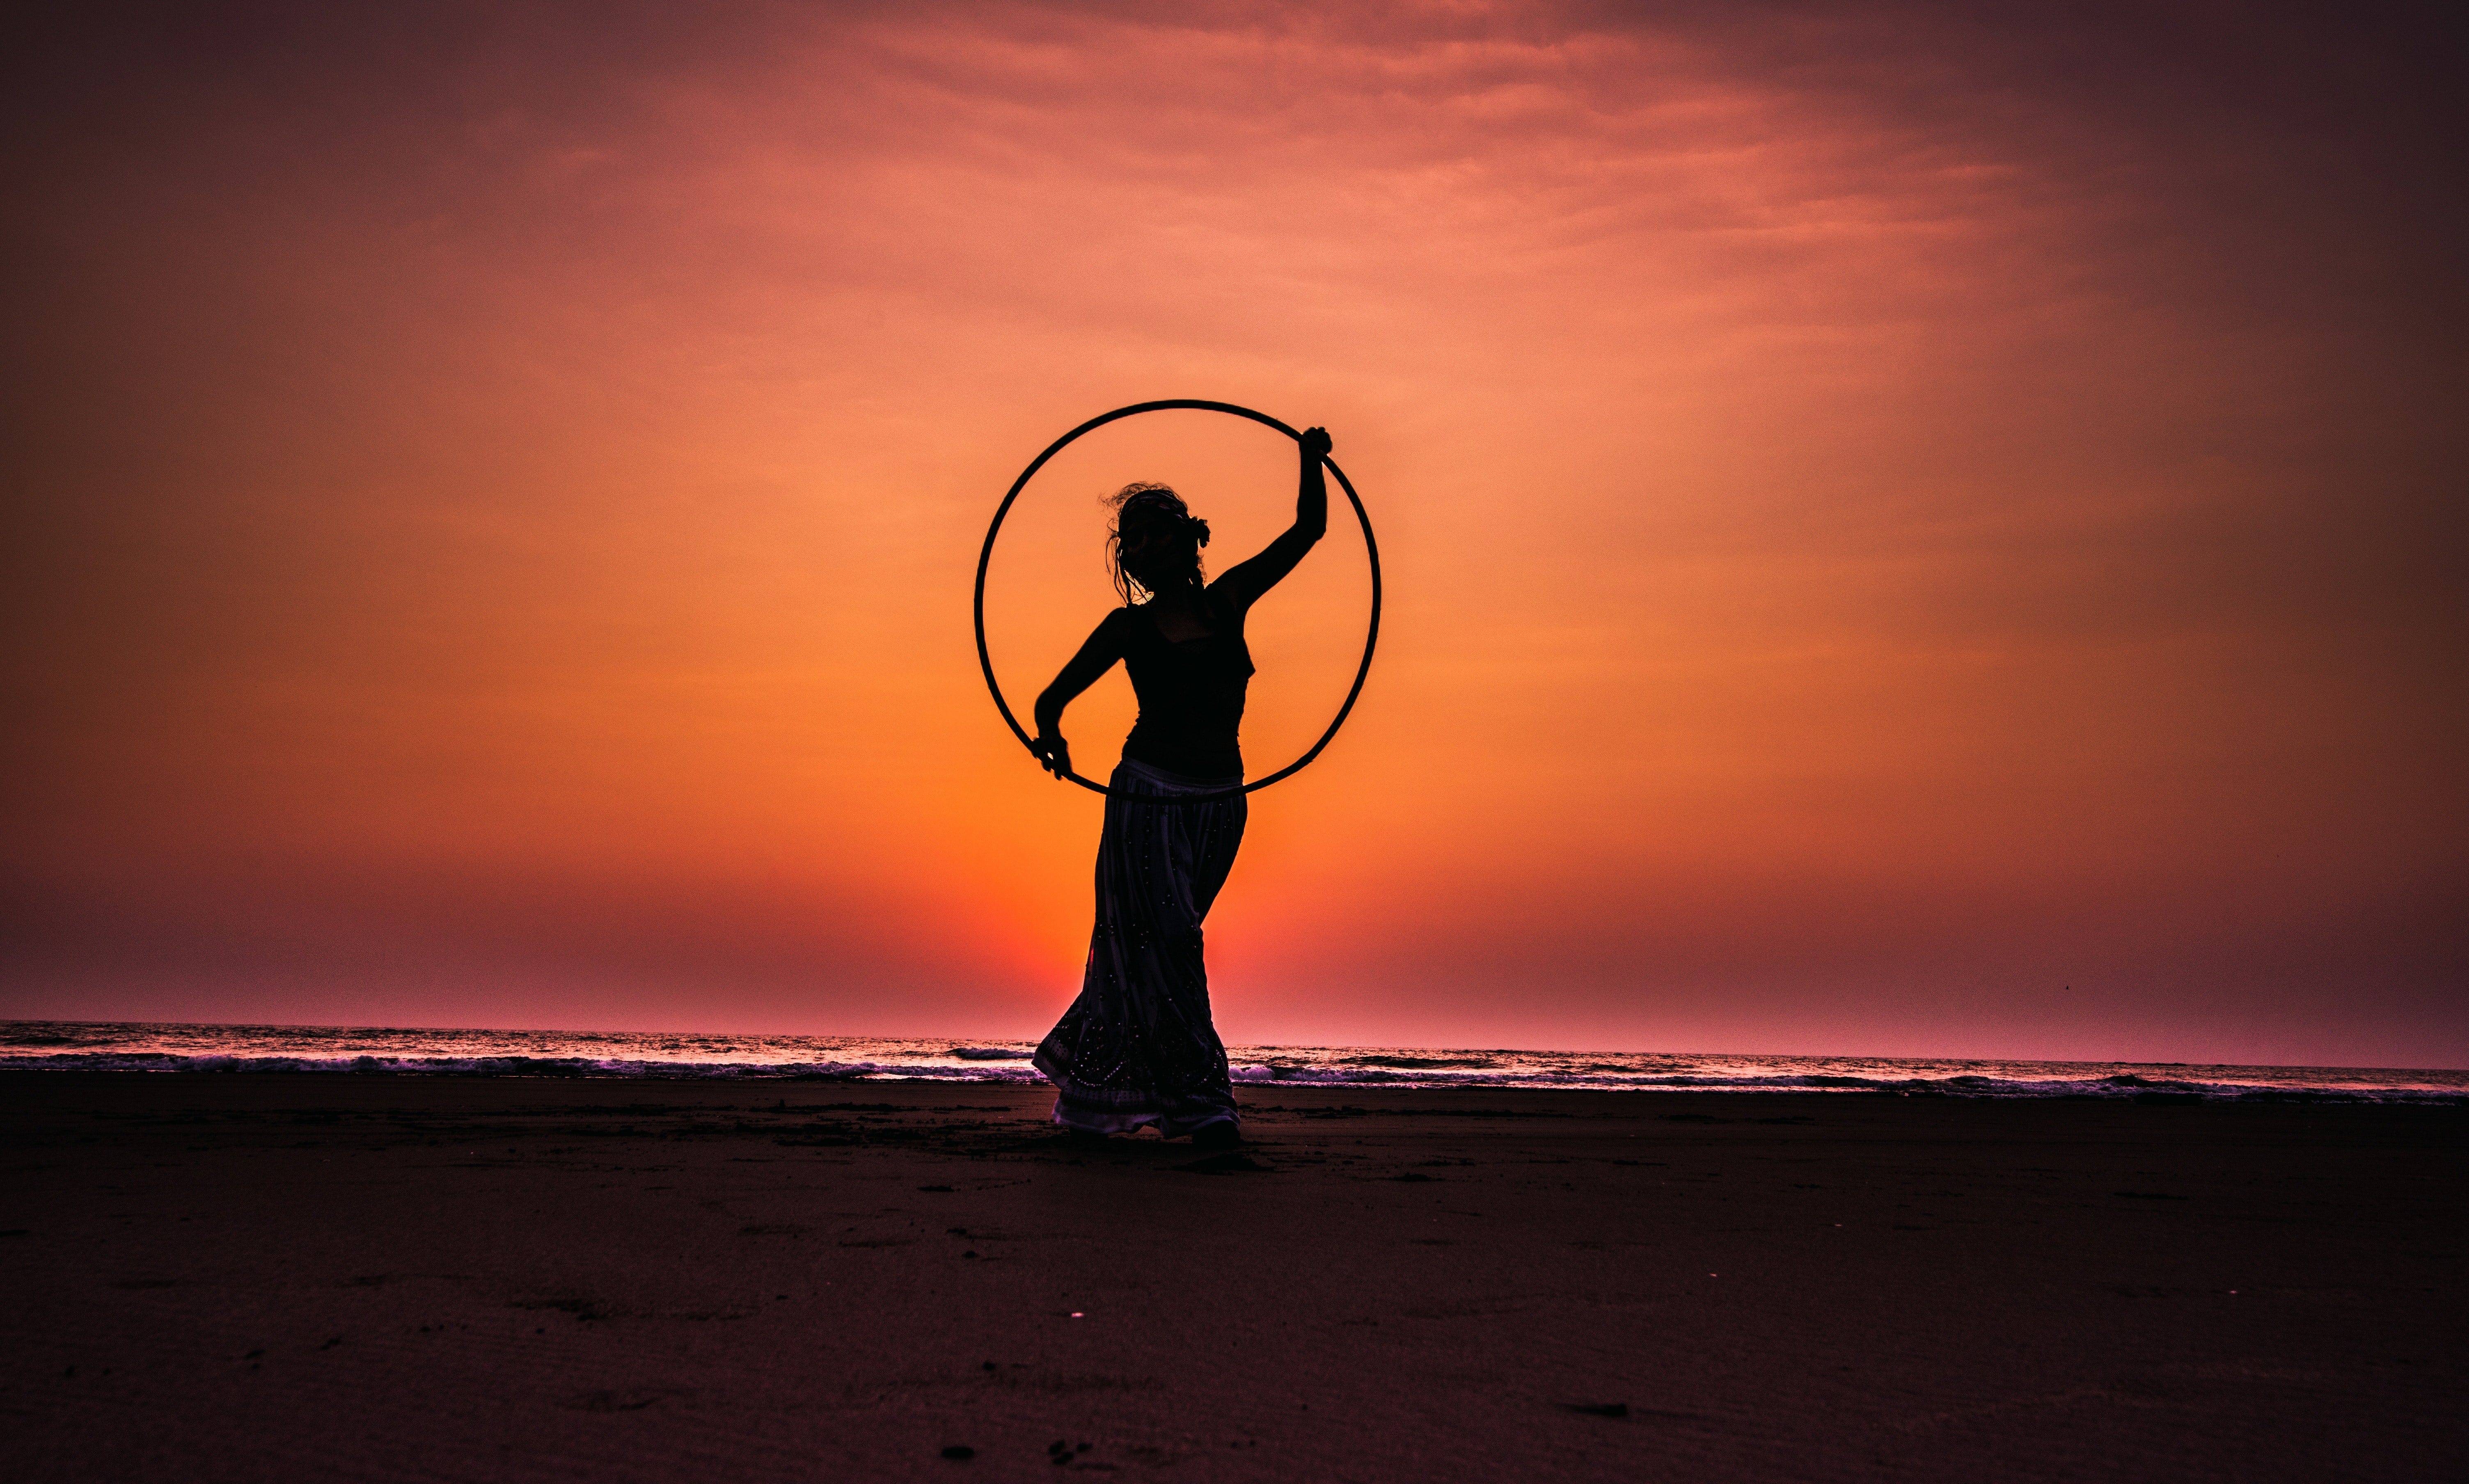 Silhouette Boy on Beach Against Sky during Sunset, Backlit, Sea, Water, Sunset, HQ Photo